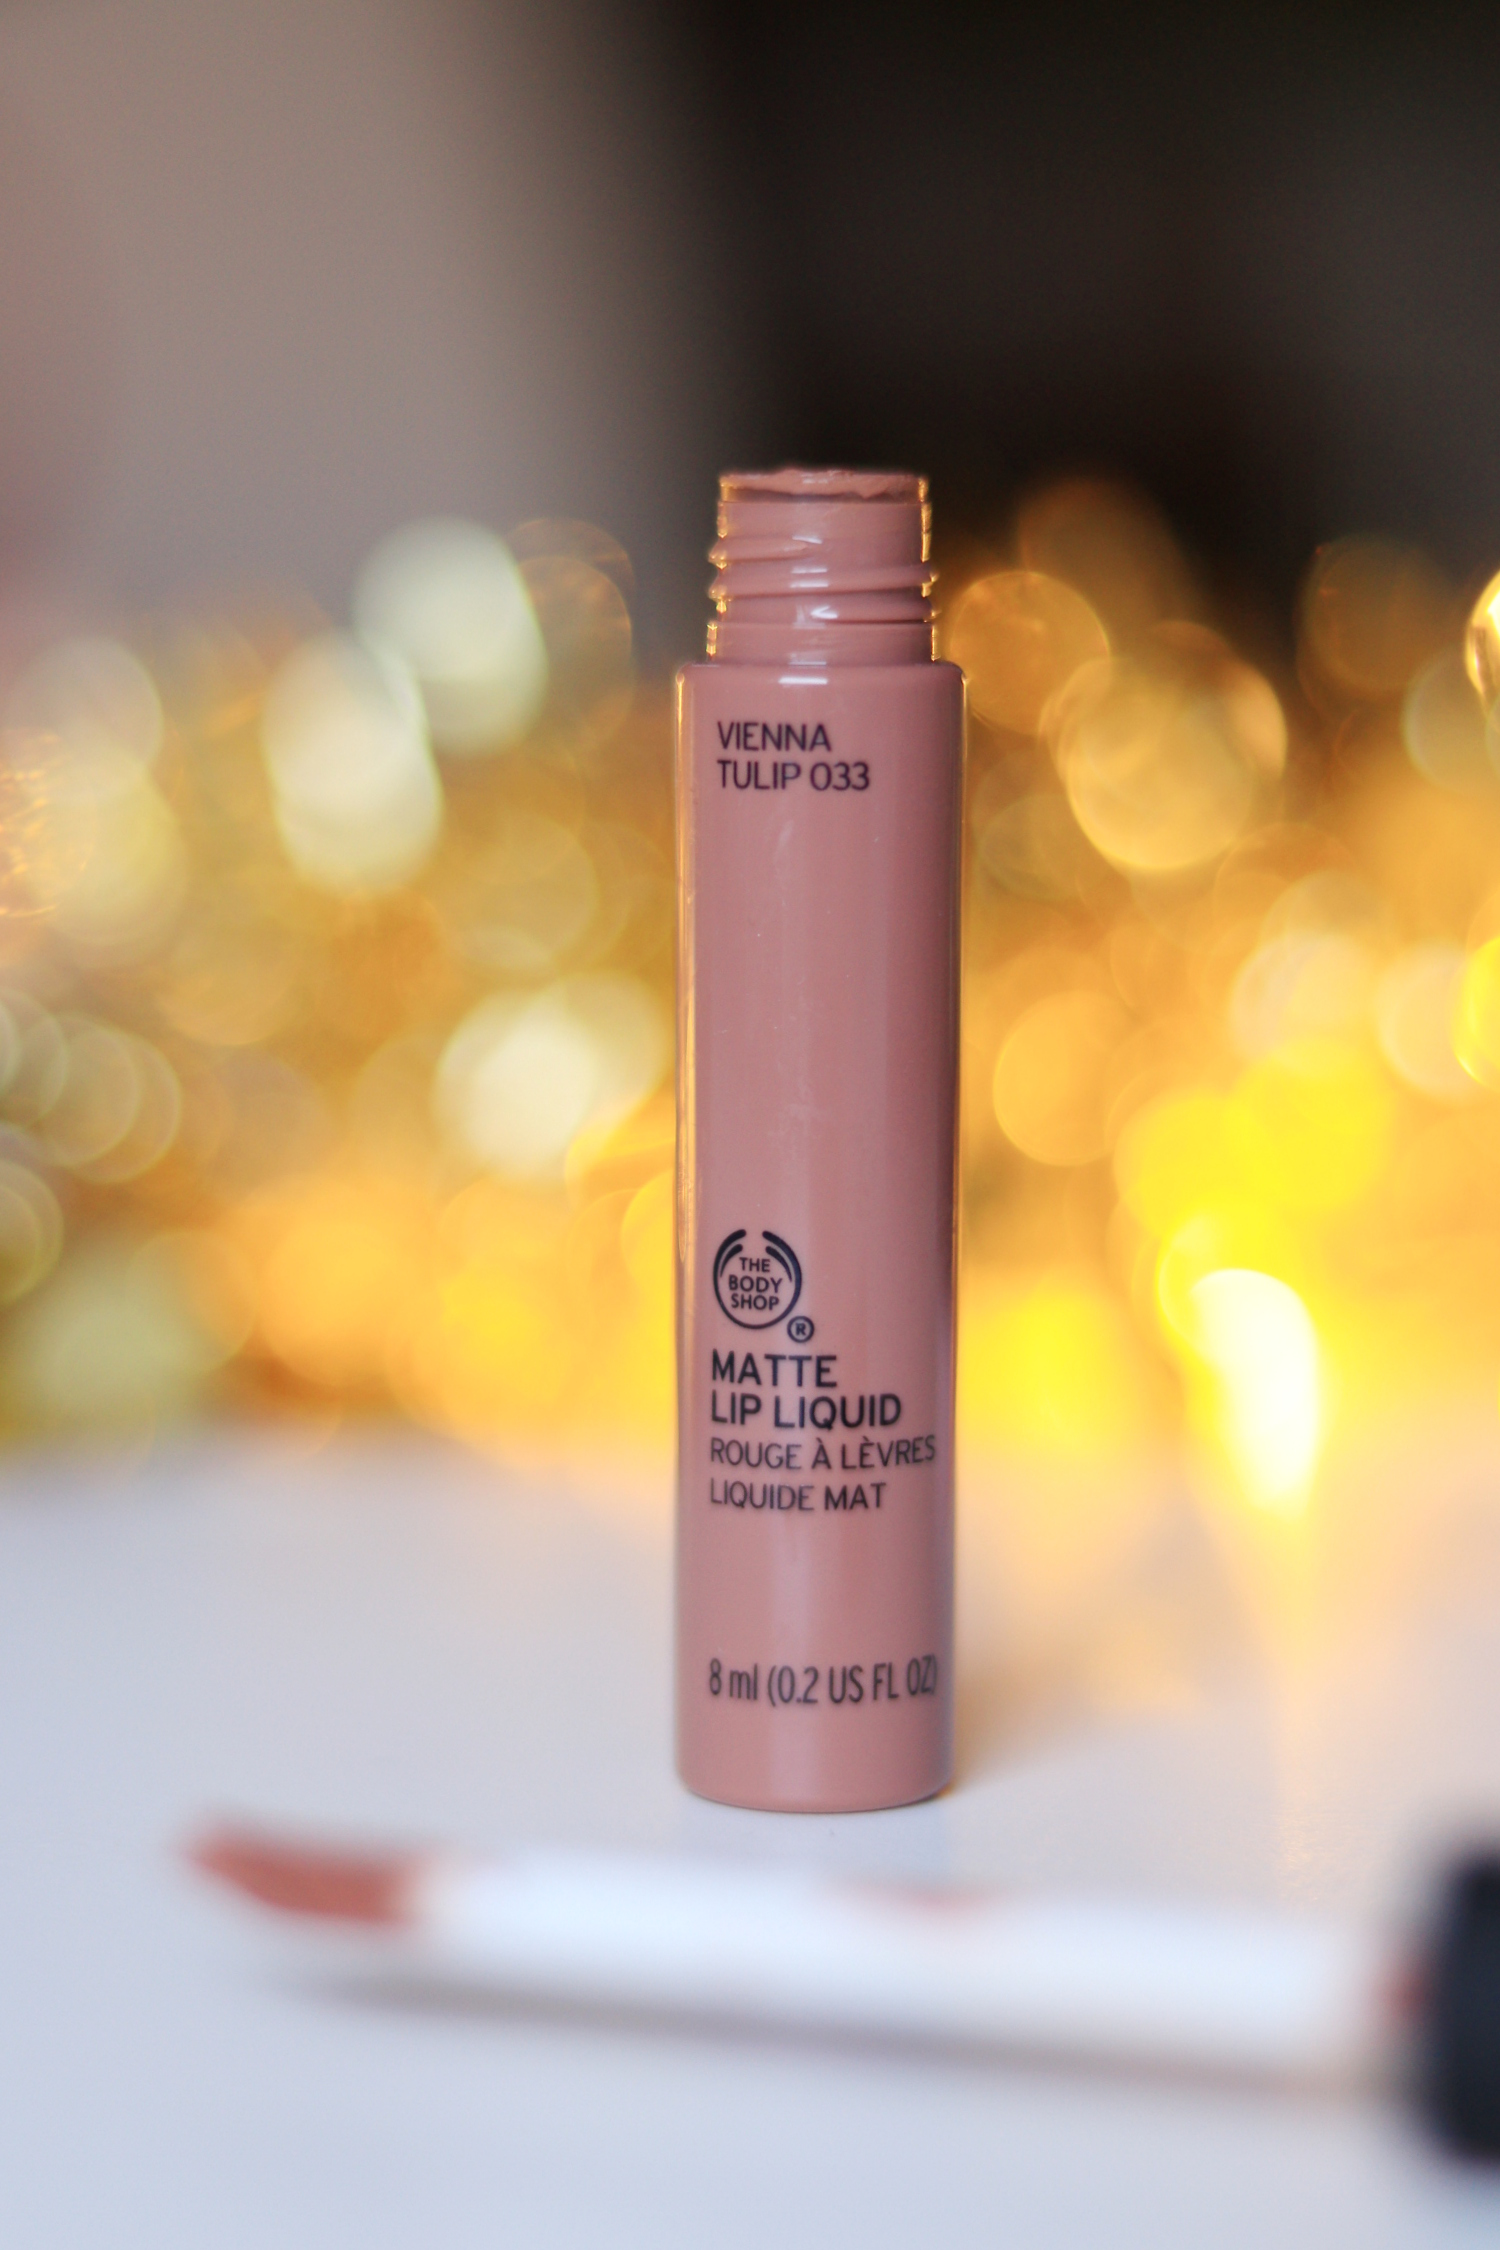 The Body Shop Matte Lip Liquid VIenna Rose